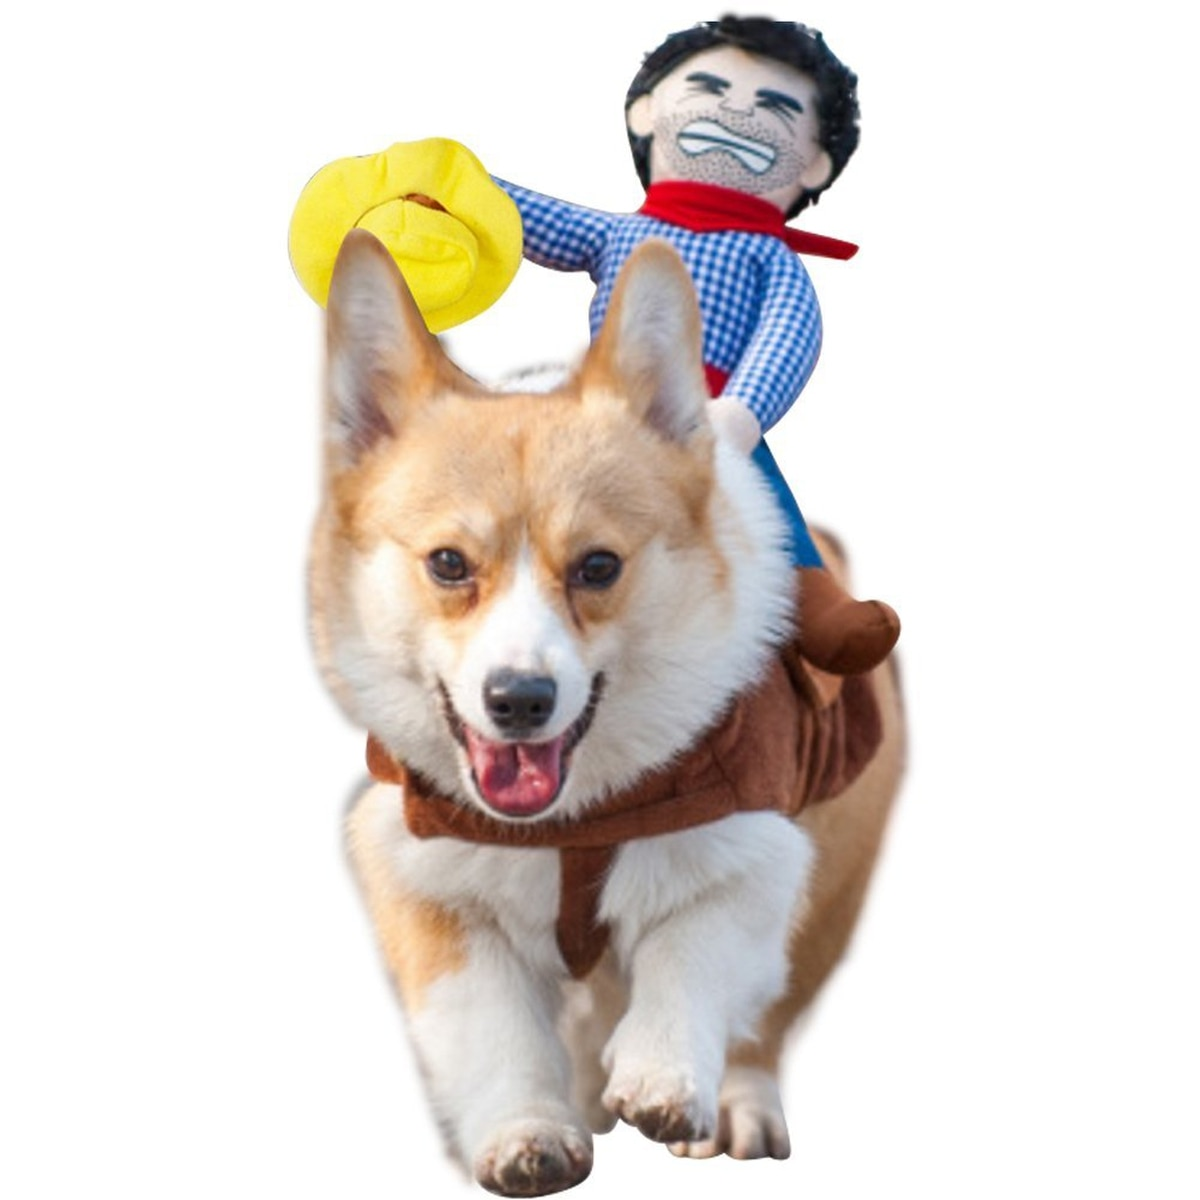 swag up your dog in these dorky halloween costumes - willamette week